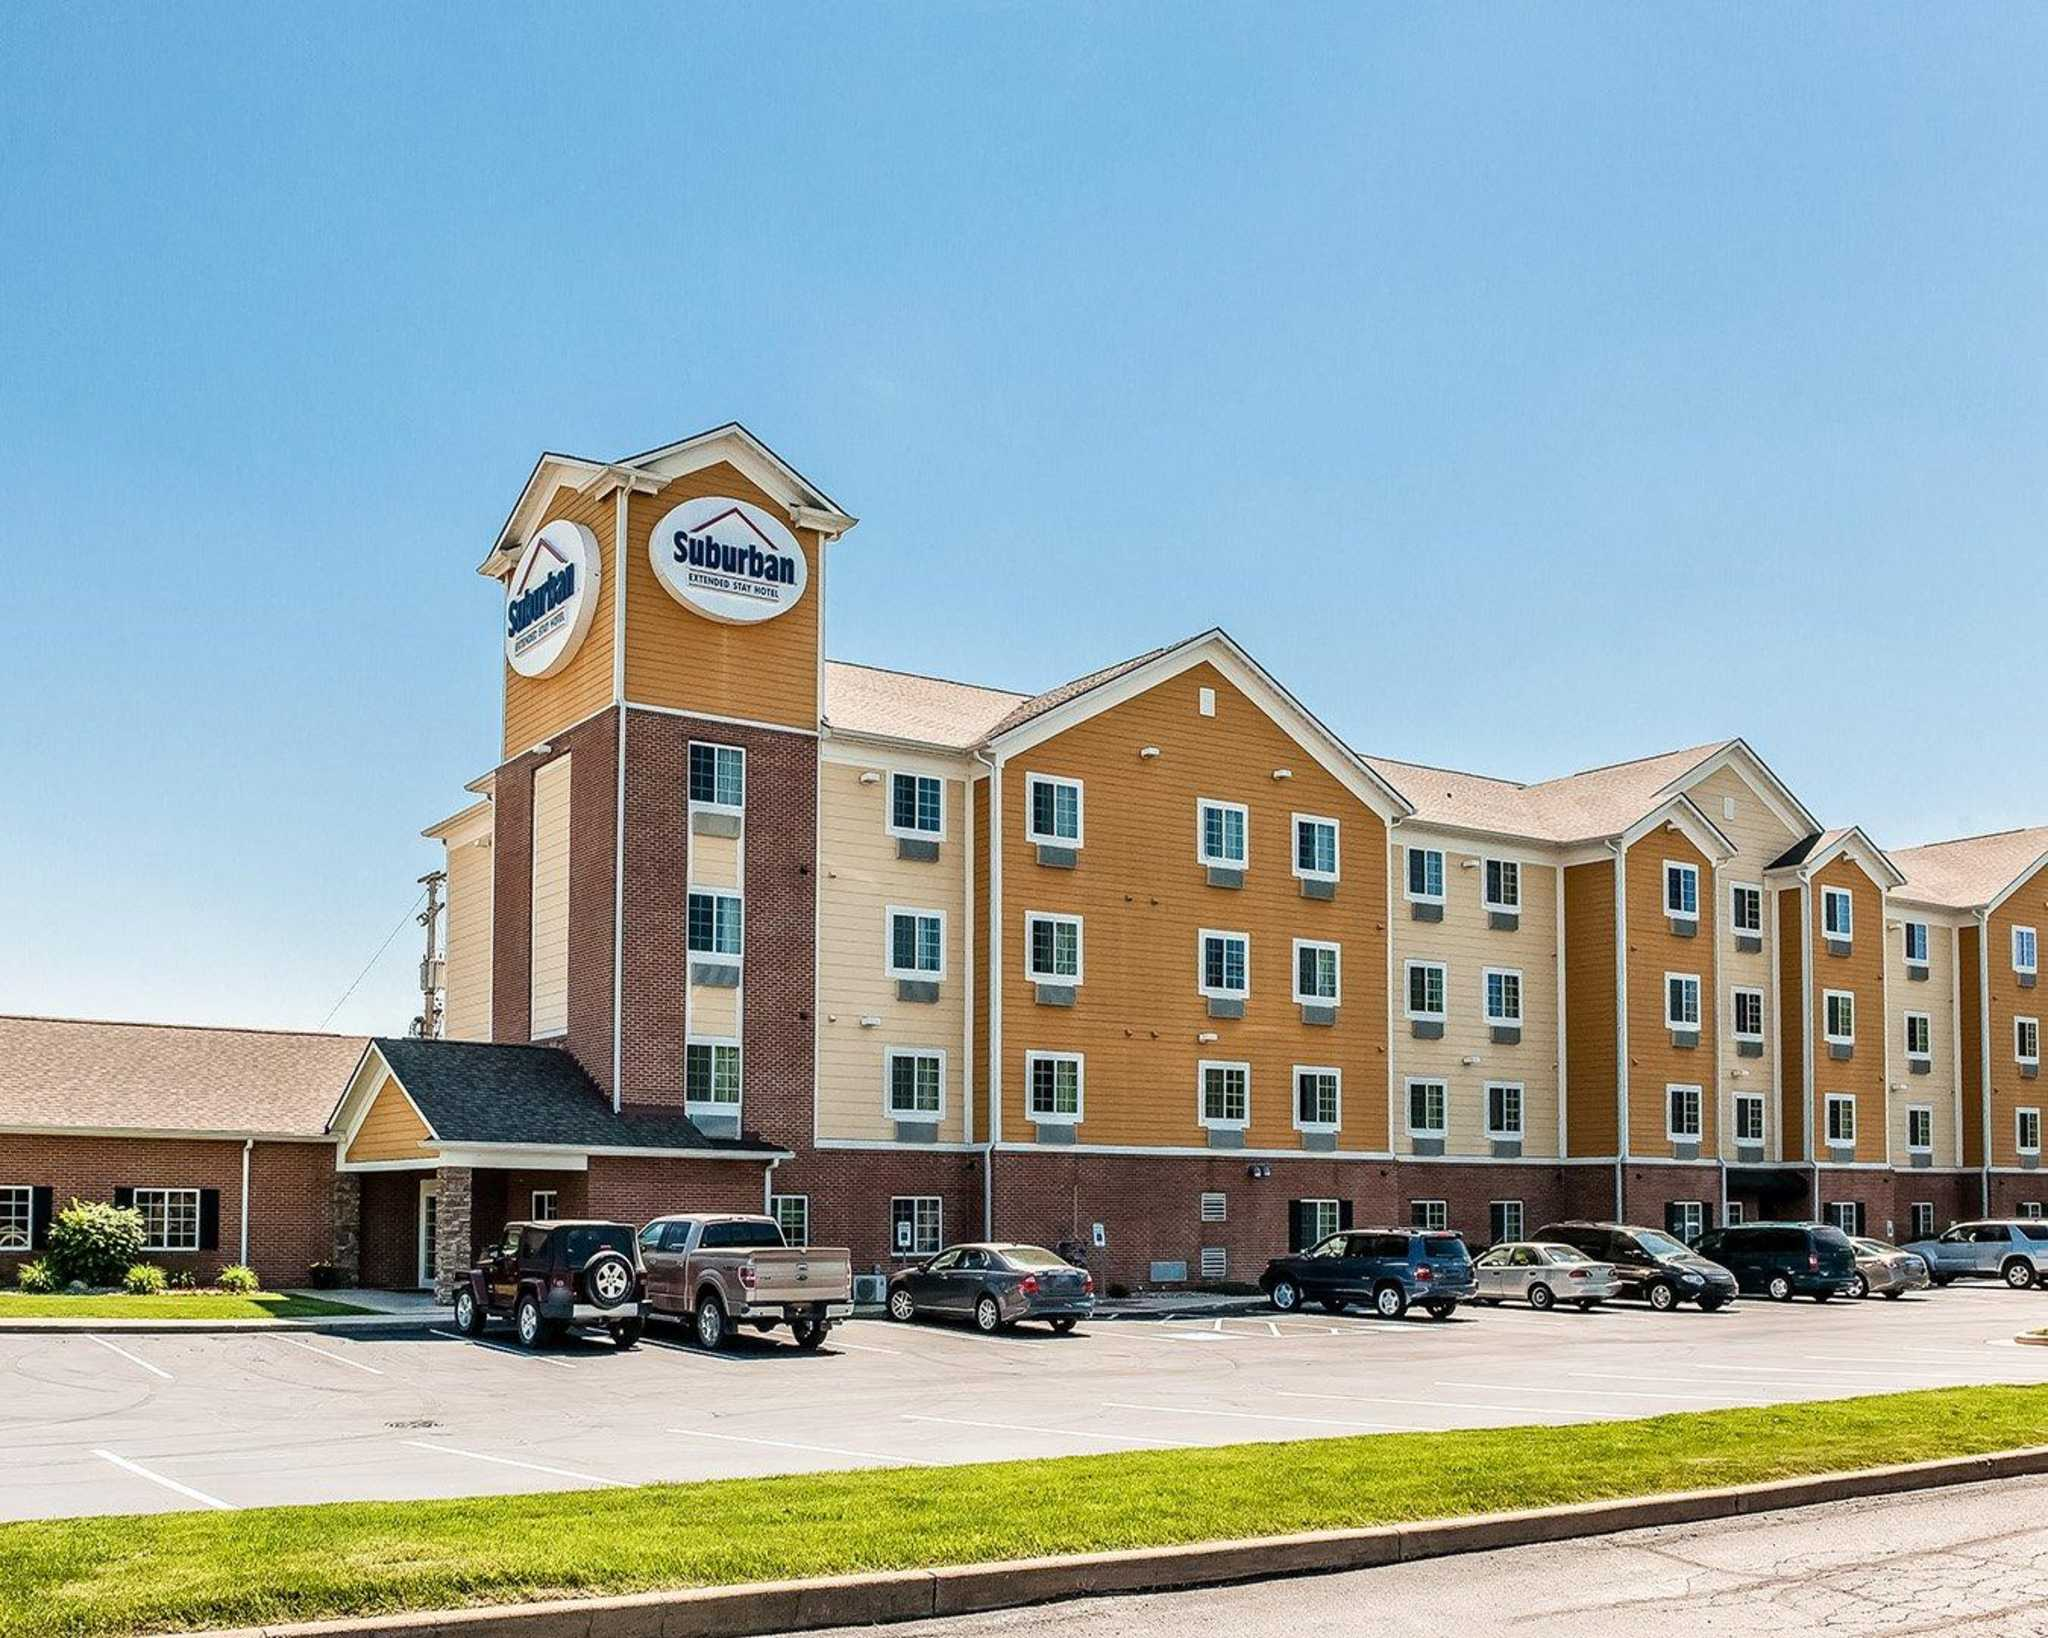 Extended Stay Hotels In South Bend Indiana